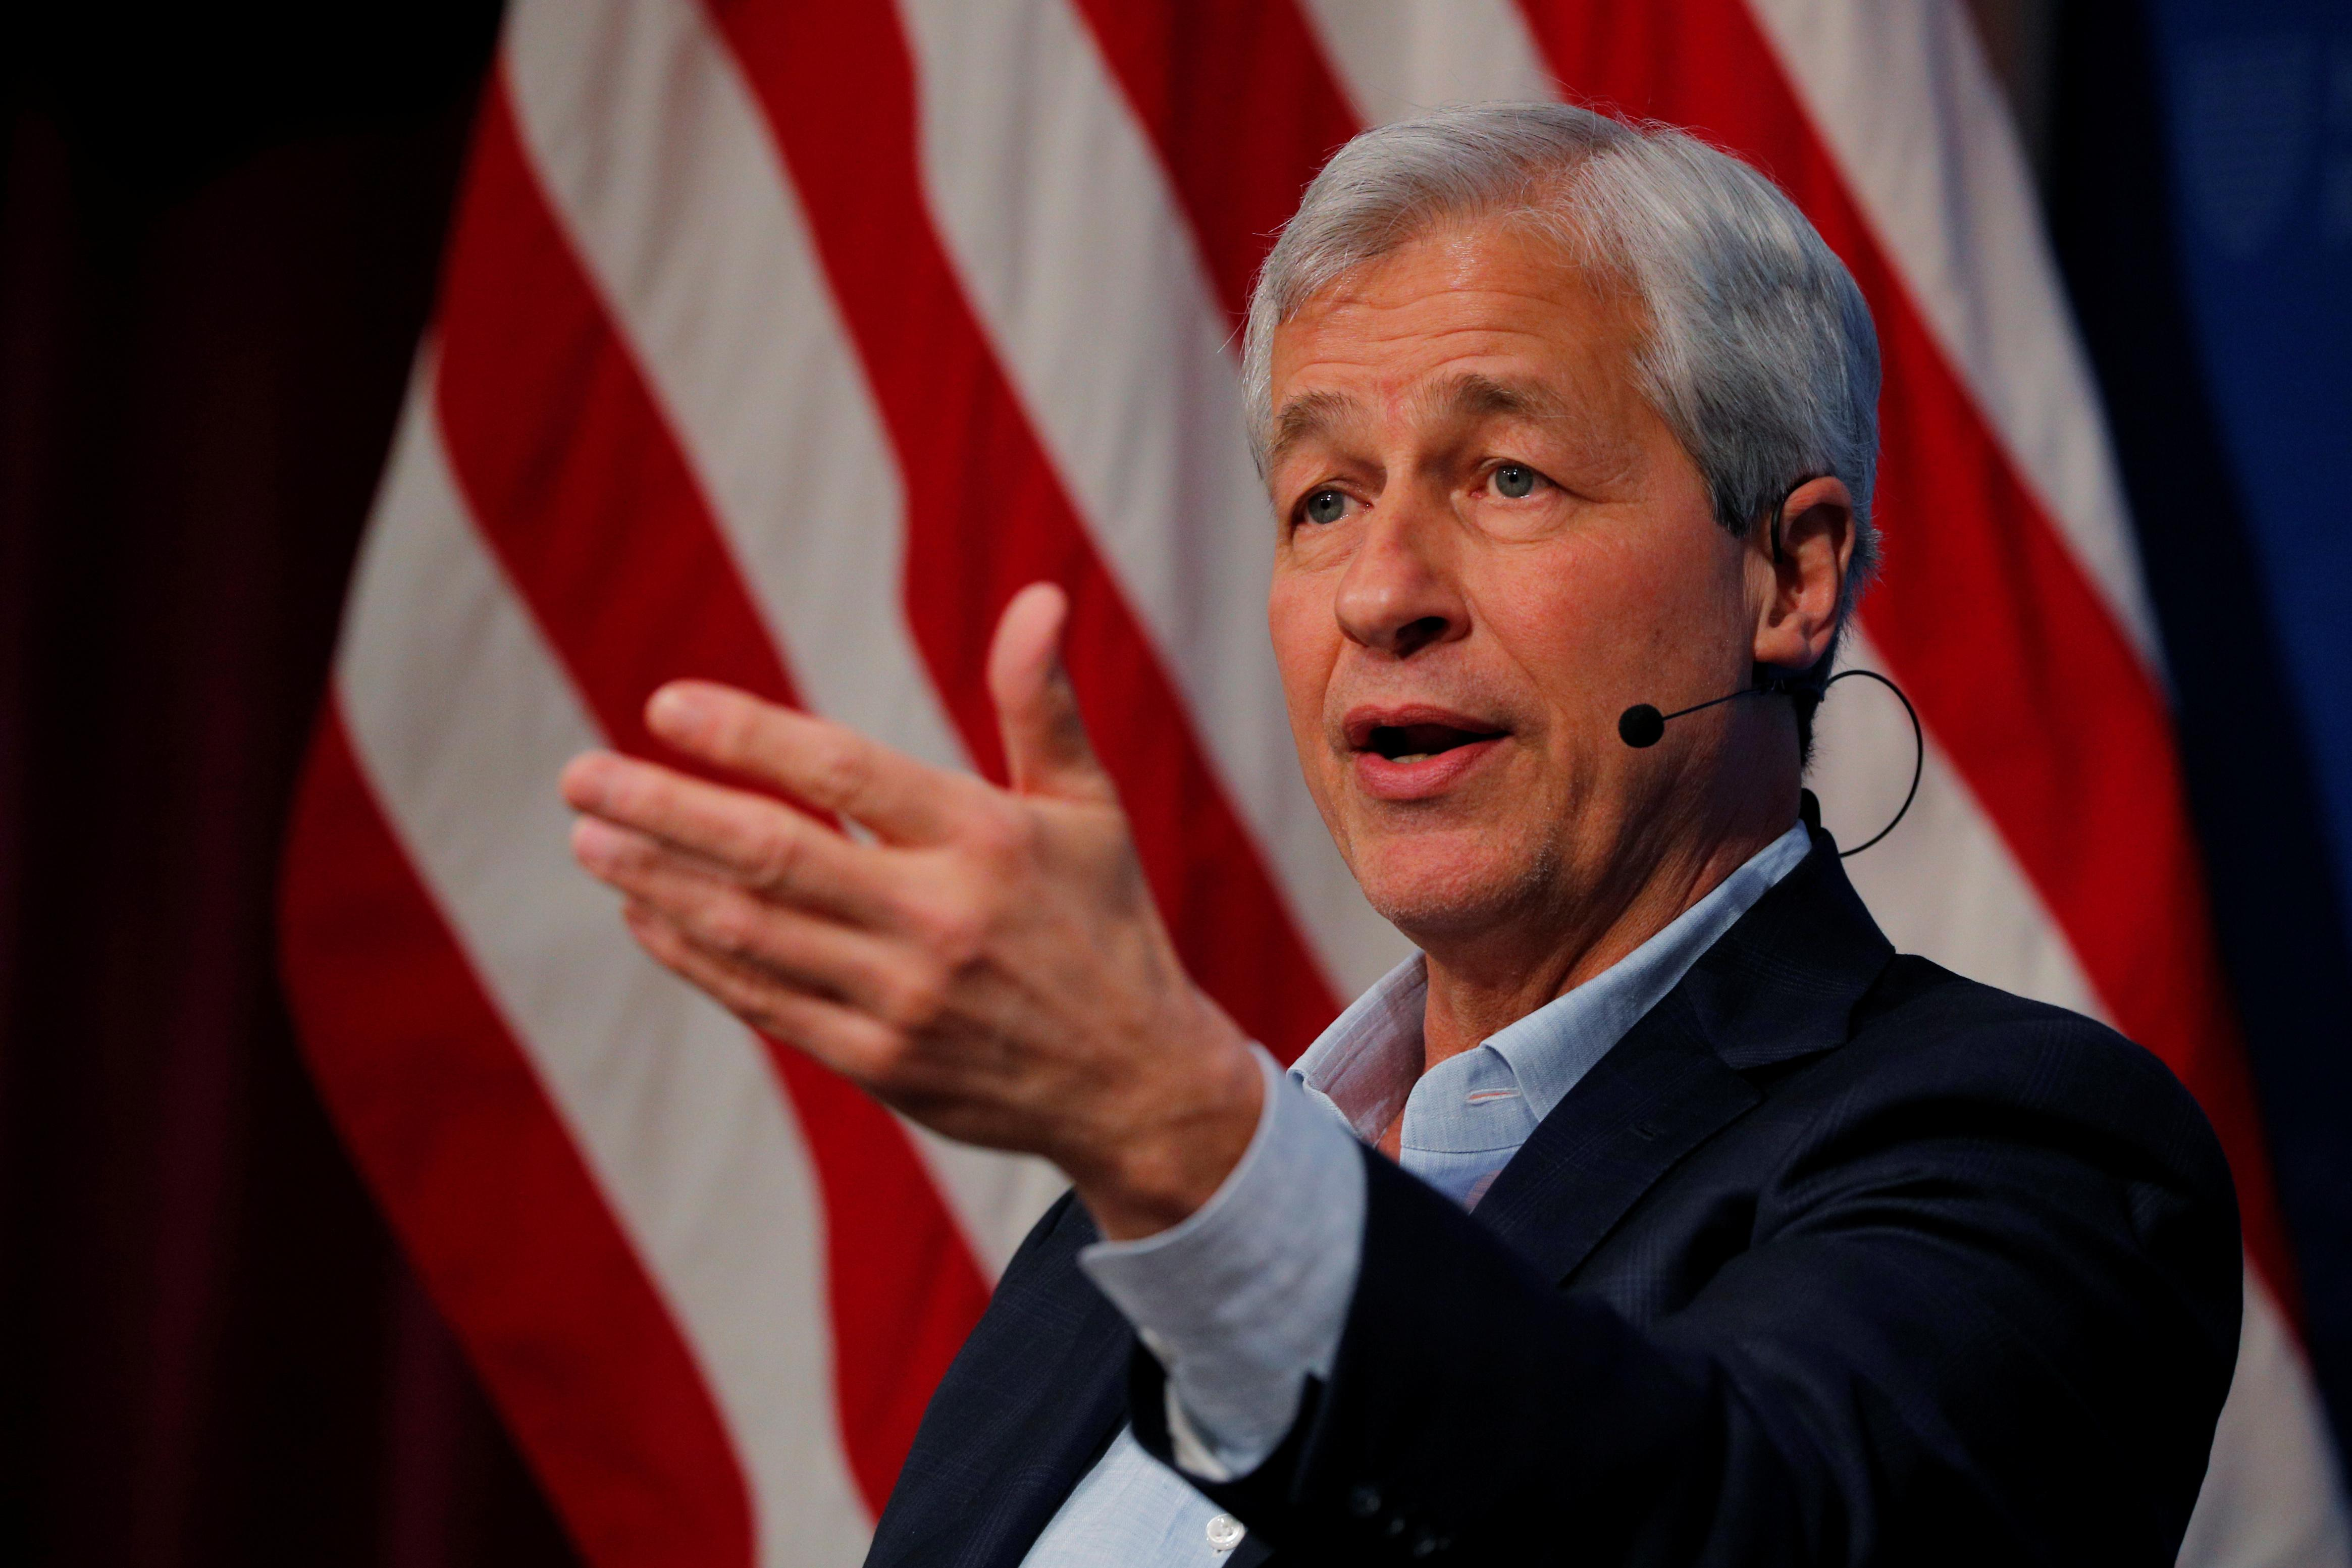 Jamie Dimon: JPMorgan Chase to give $50 million to Detroit residents who 'are being left behind'